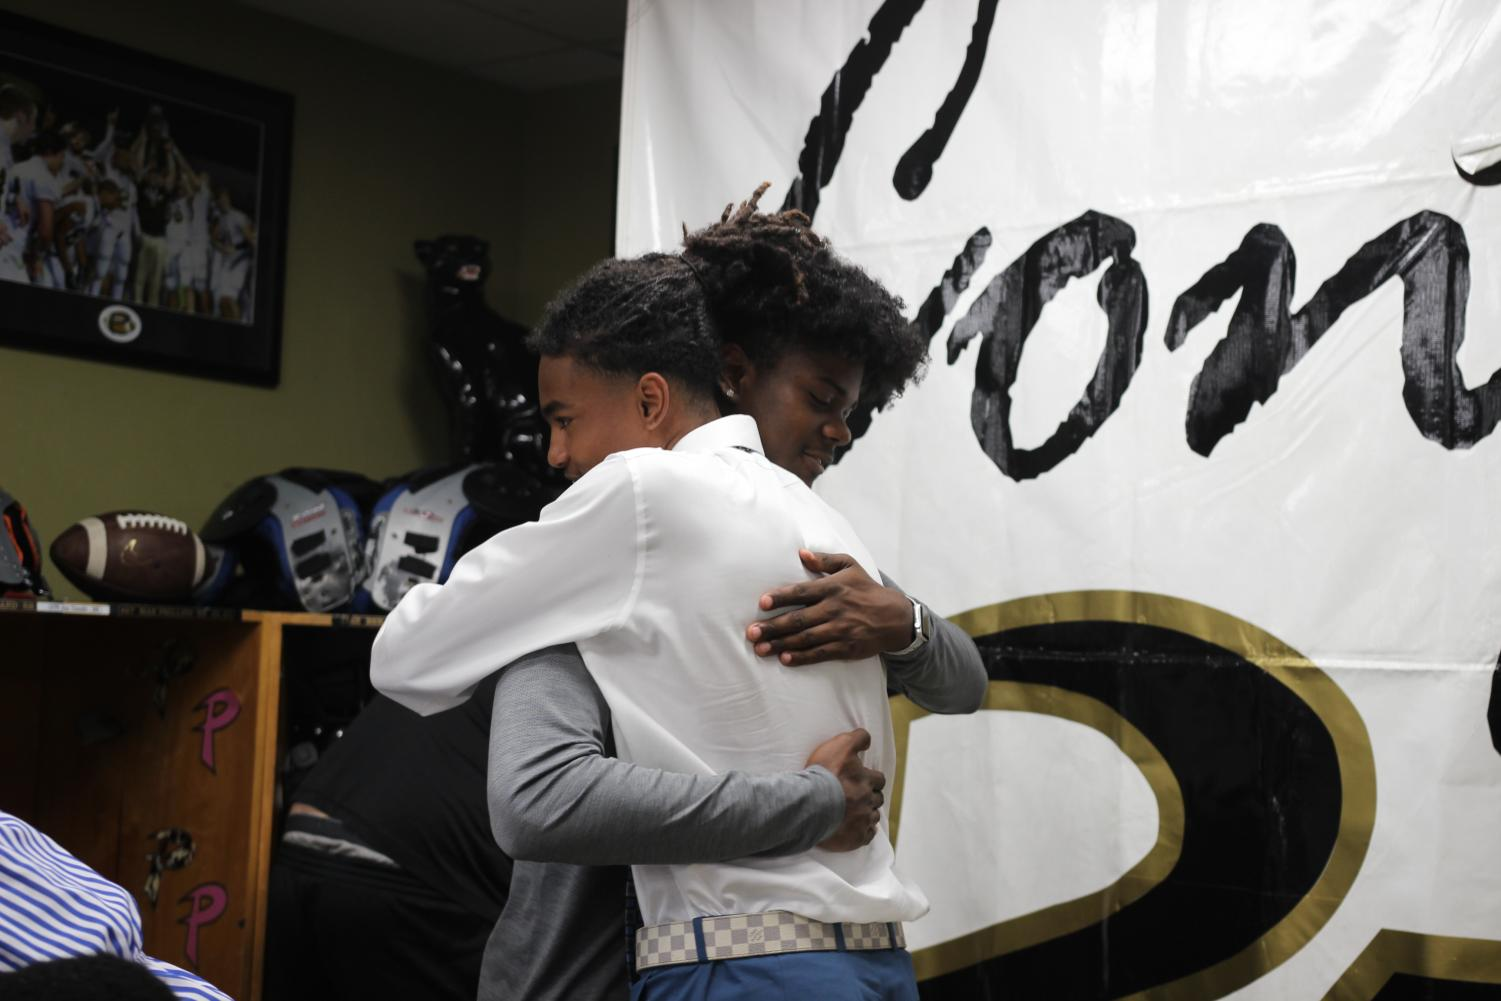 Following+the+ceremony+senior+Julien+Kee+embraces+teammate+Cameron+Shaw+before+they+pose+for+a+picture+April+17+in+the+field+house.+Shaw+signed+on+National+Signing+Day+and+will+be+attending+University+of+Central+Florida.++